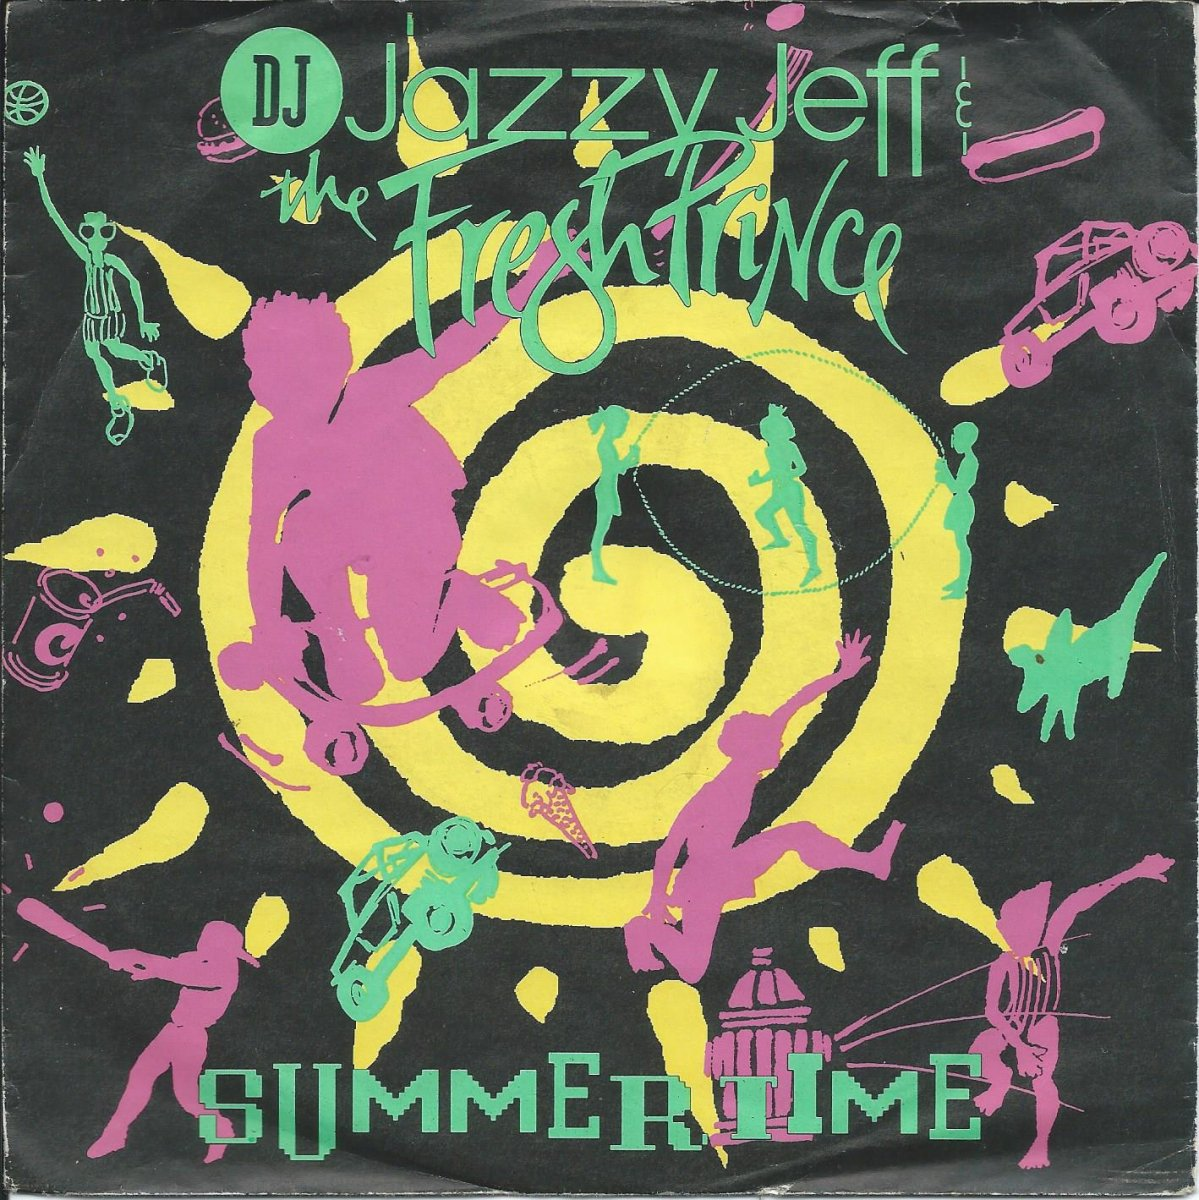 DJ JAZZY JEFF & THE FRESH PRINCE / SUMMERTIME (7